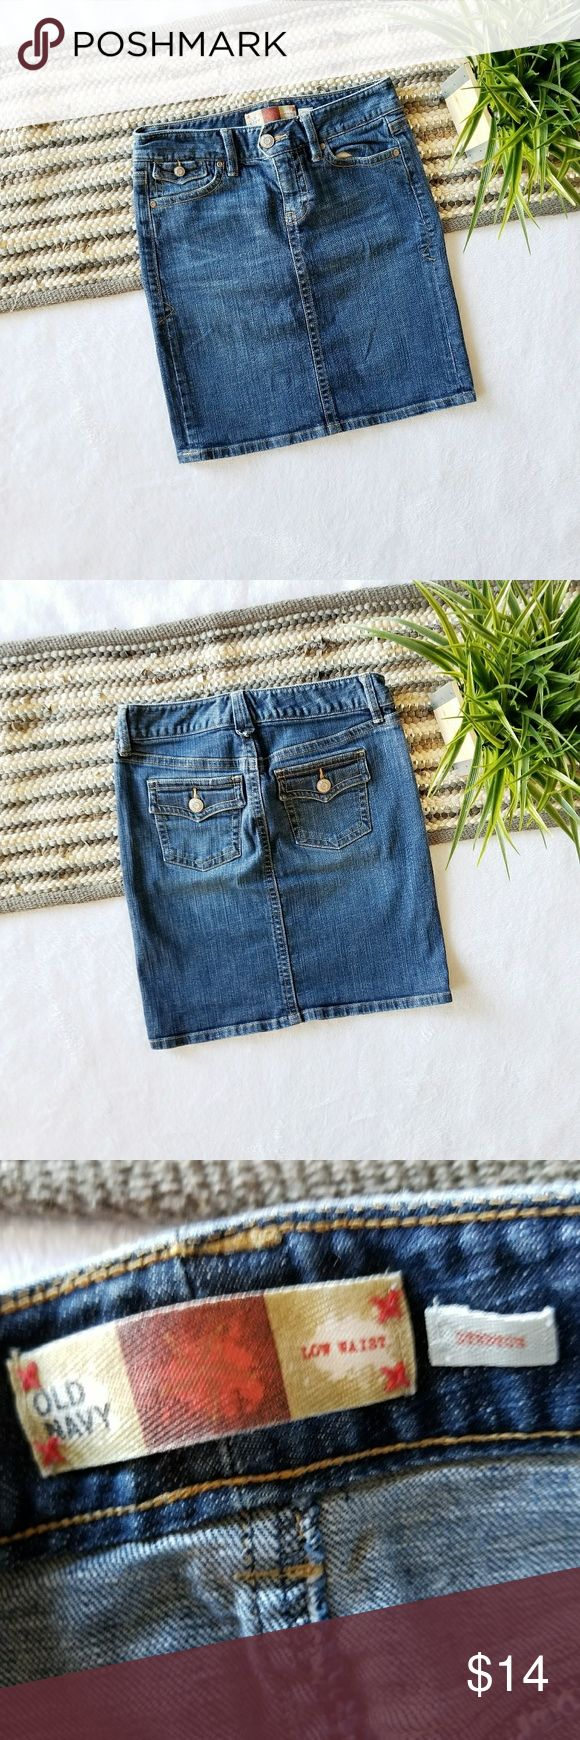 """Old Navy Stretch Denim Skirt Dark wash denim skirt. A little stretch to it. Very pretty and comfy. ❌No Modeling. Waist(laying flat) 15"""" Length 19""""  Brand: Old Navy Size: 2 Condition: nwot, no flaws at all. Never worn, only washed once.  #oldnavy #denimskirt #denim #skirt #jeanskirt #jean #darkwash #stretch #summer #fall #summerfashion #summerstyle #fashion #style #cheap #styleforcheap #xoxopf #bundleandsave Old Navy Skirts"""